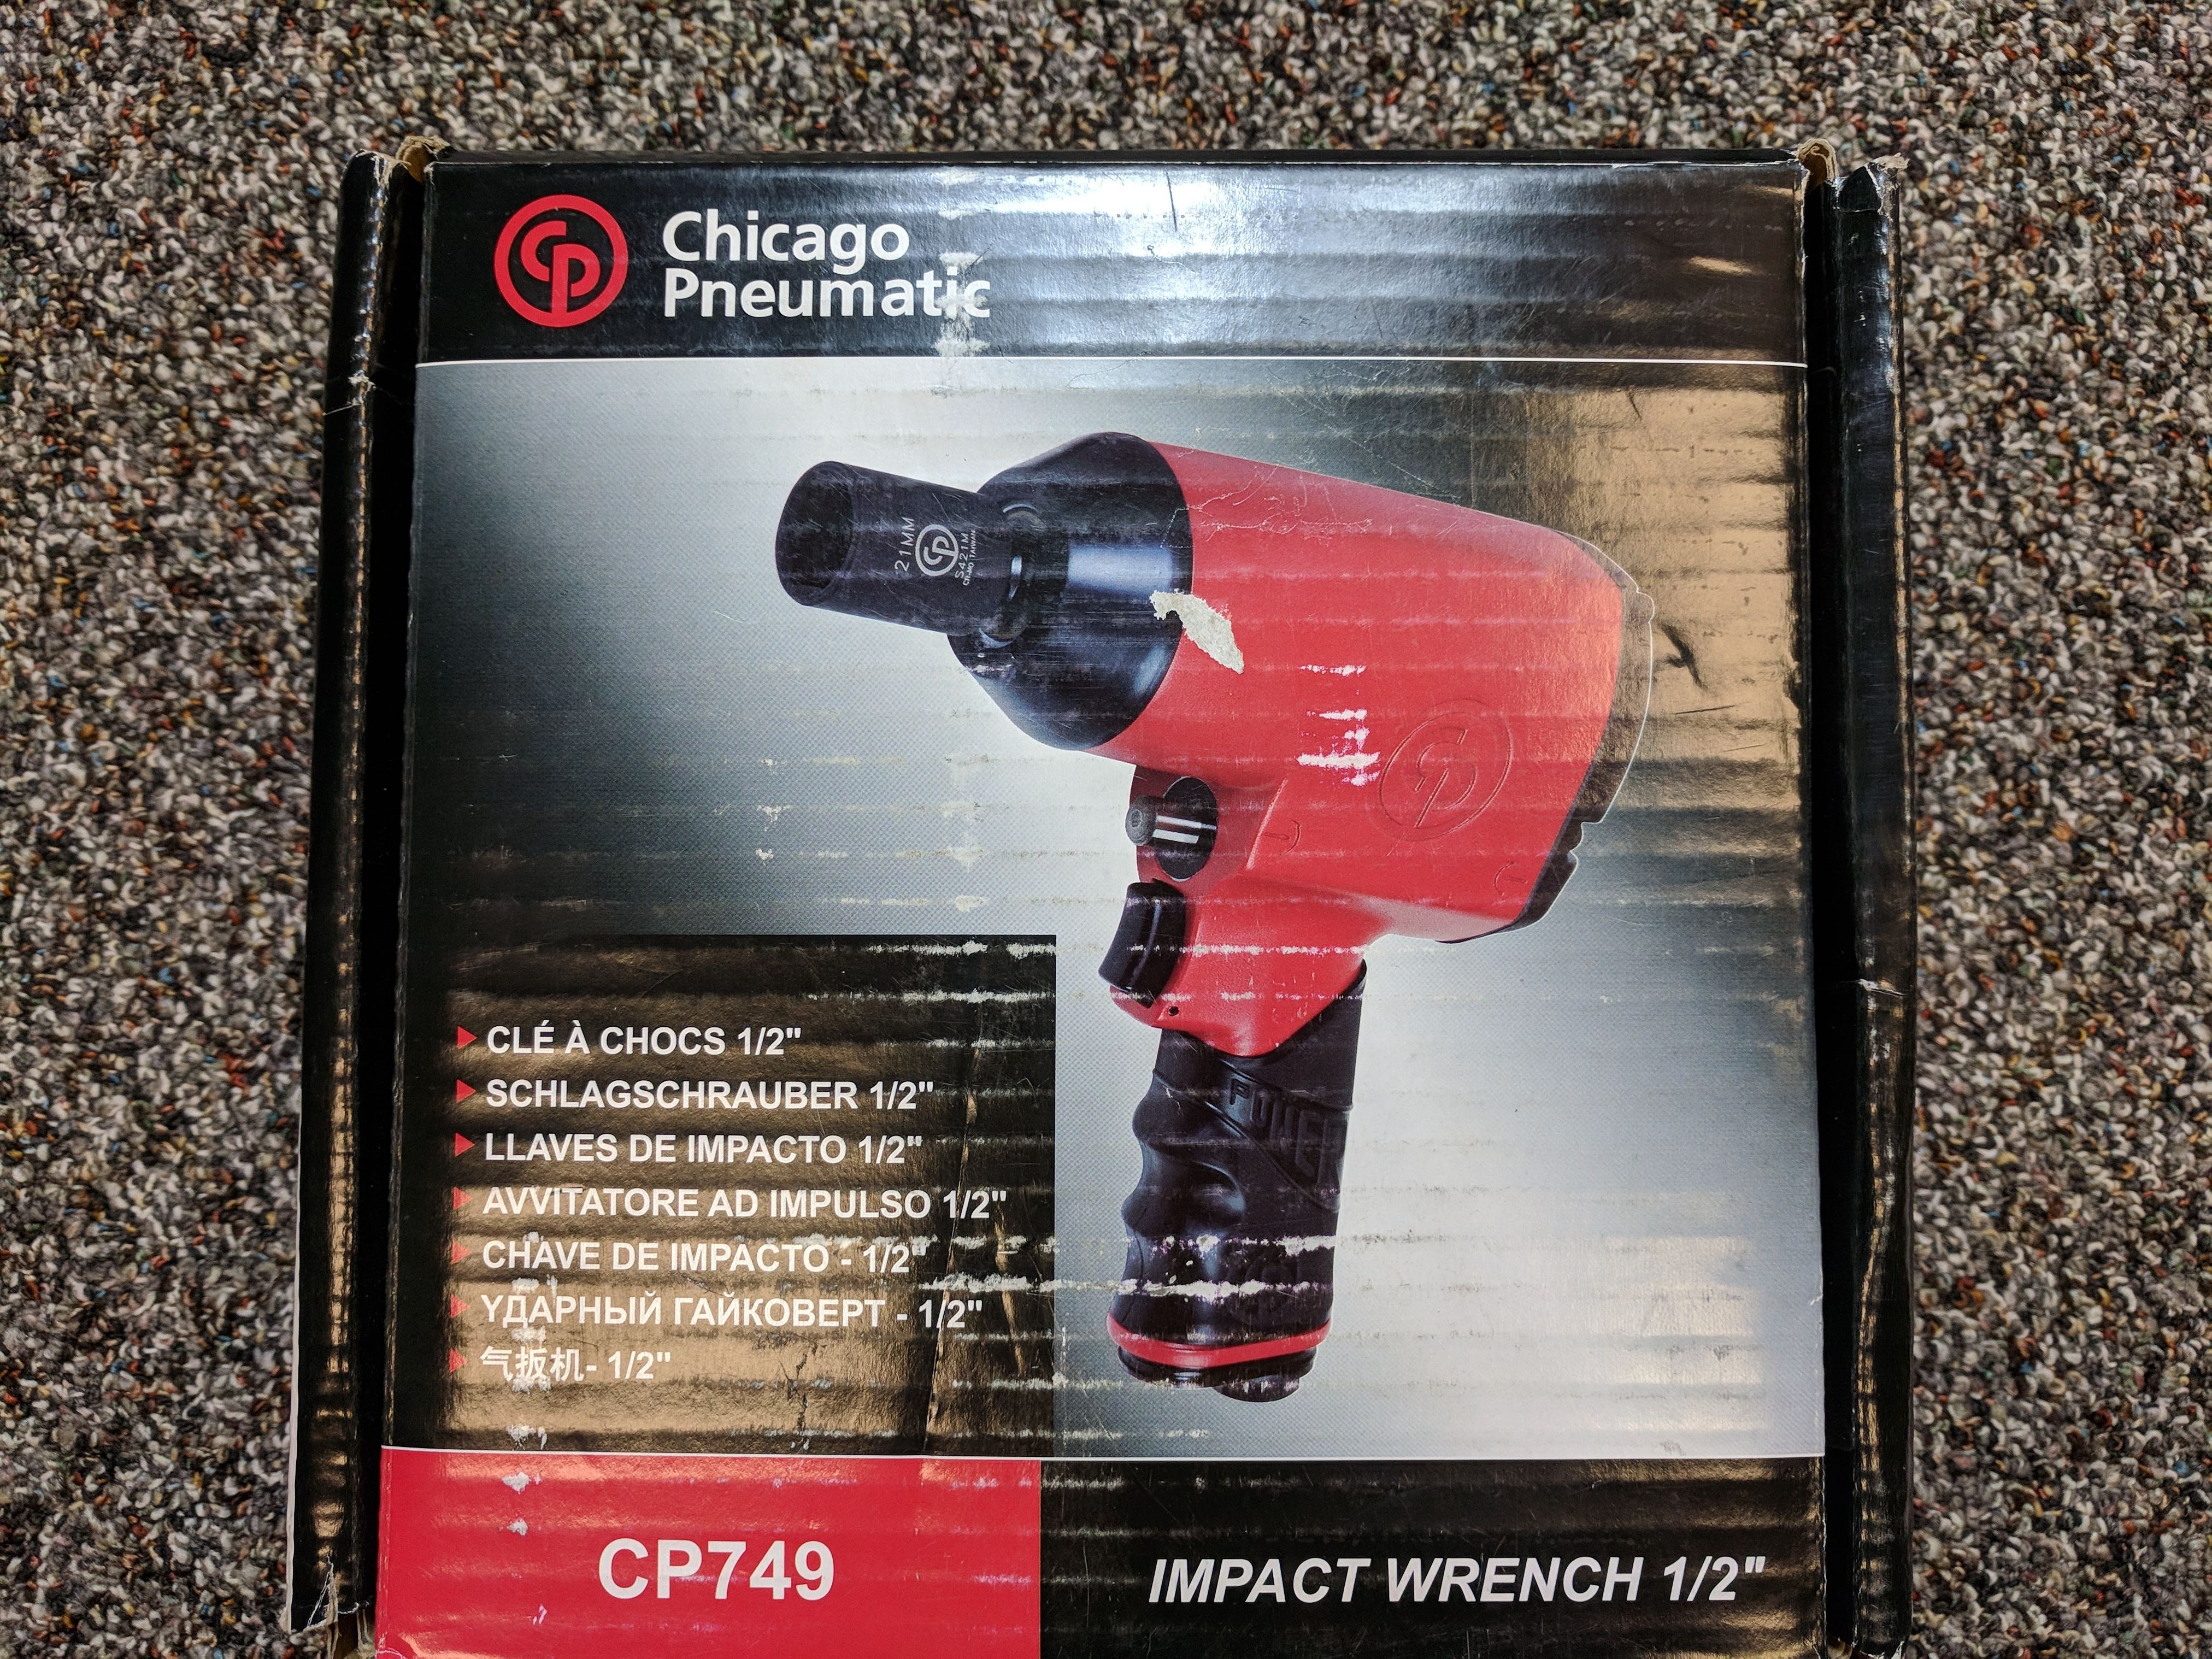 CHICAGO PNEUMATIC SUPER DUTY 1/2